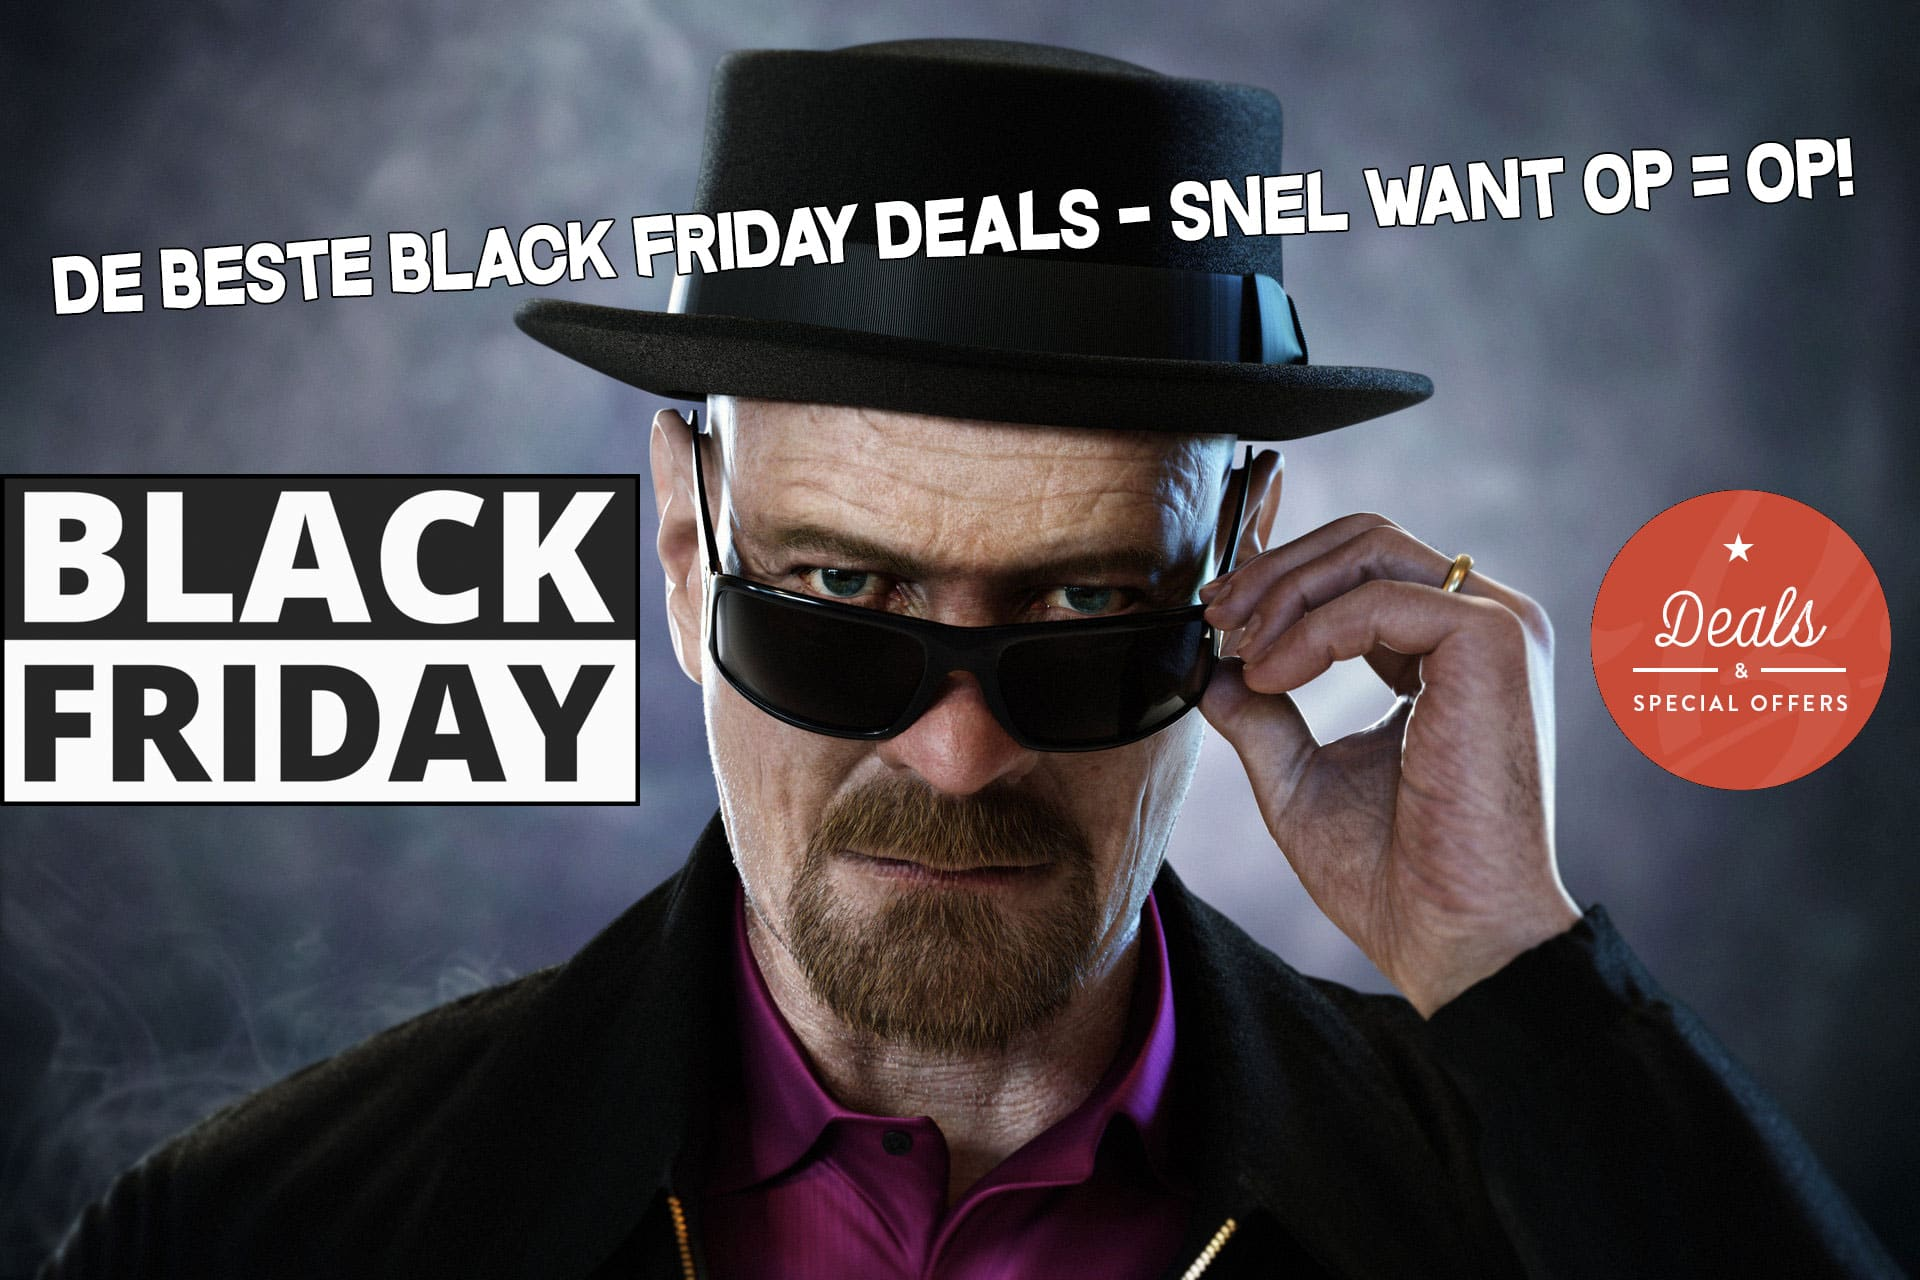 Black friday 2019 deals in Nederland